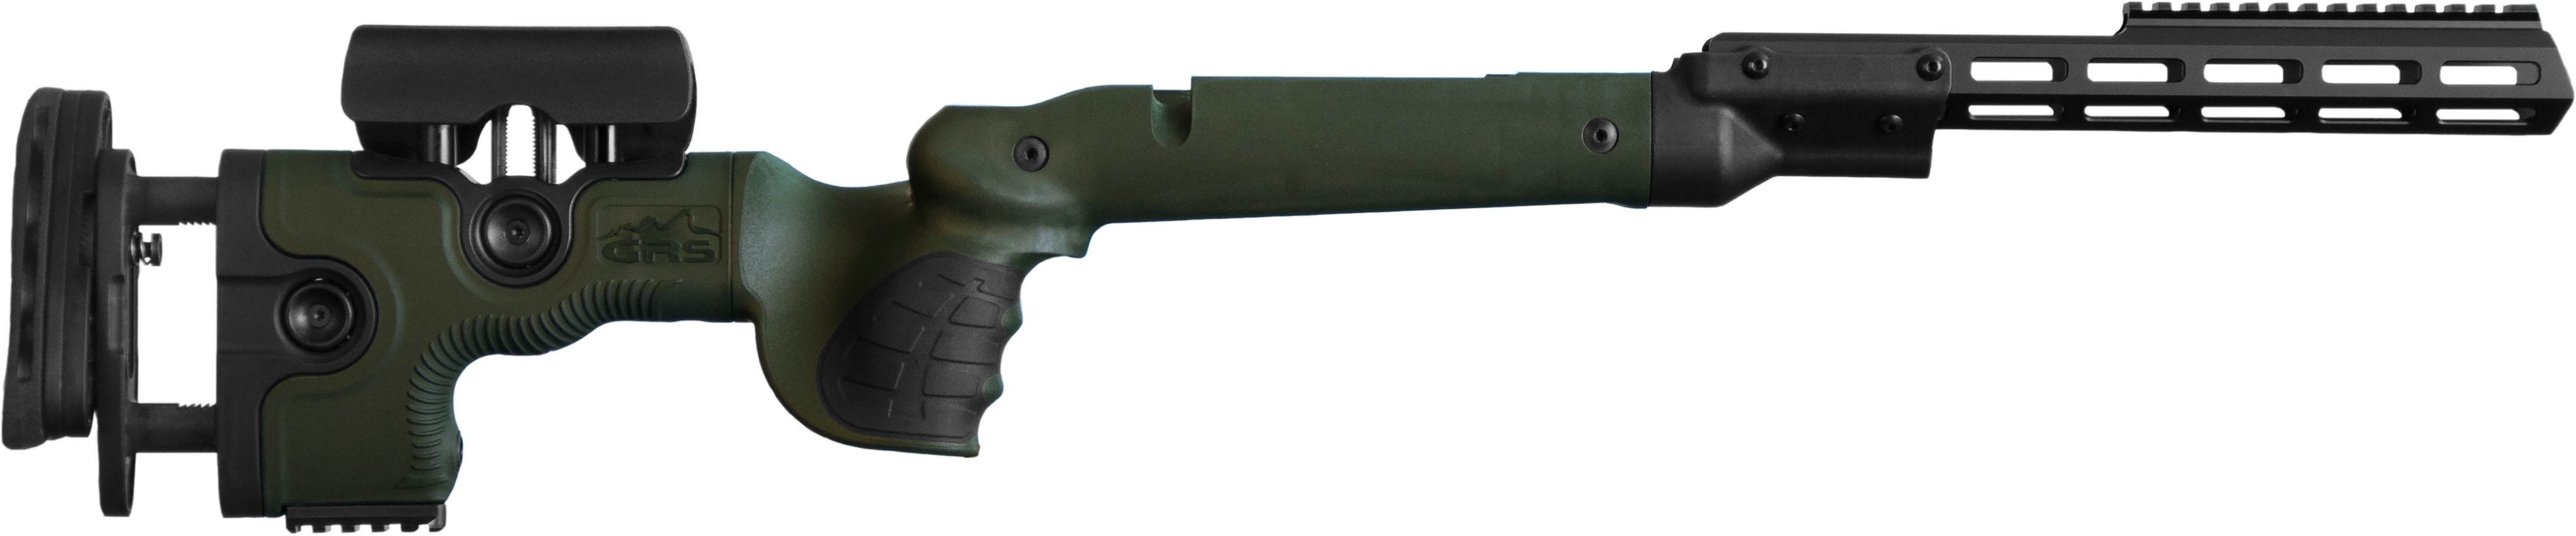 GRS Warg Green Rightview Adjustment